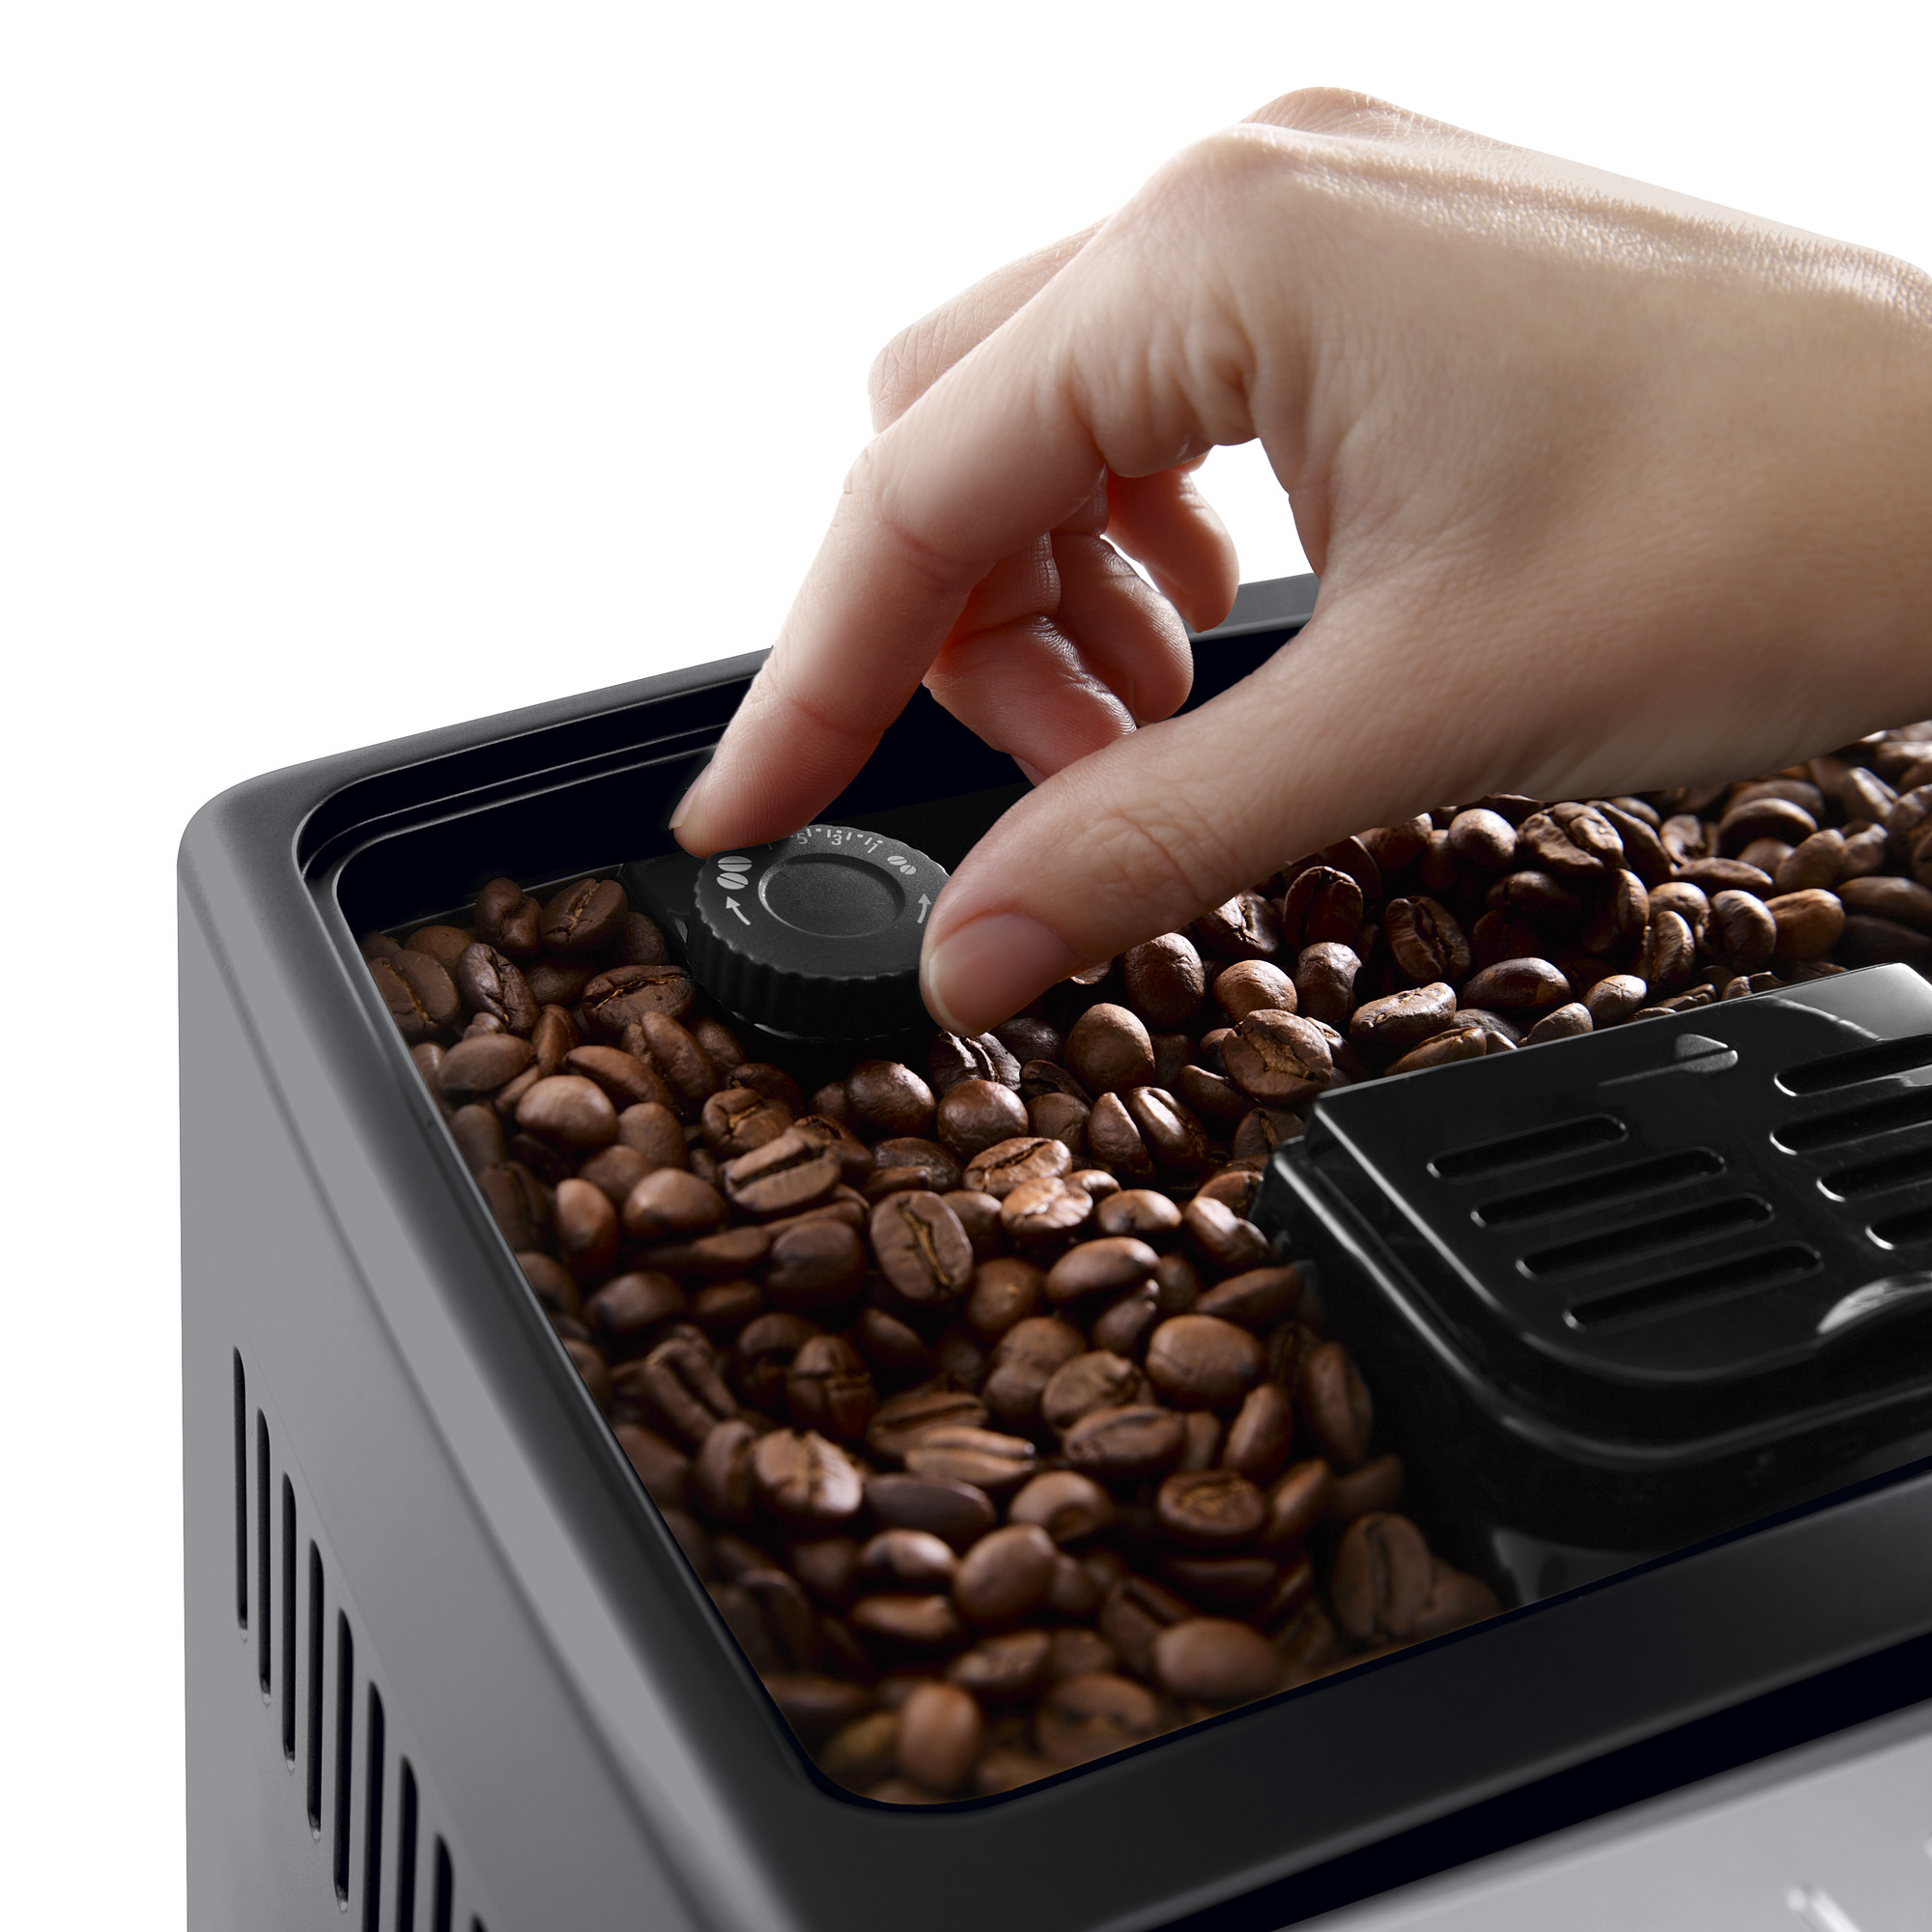 a person turning a knob on a coffee machine